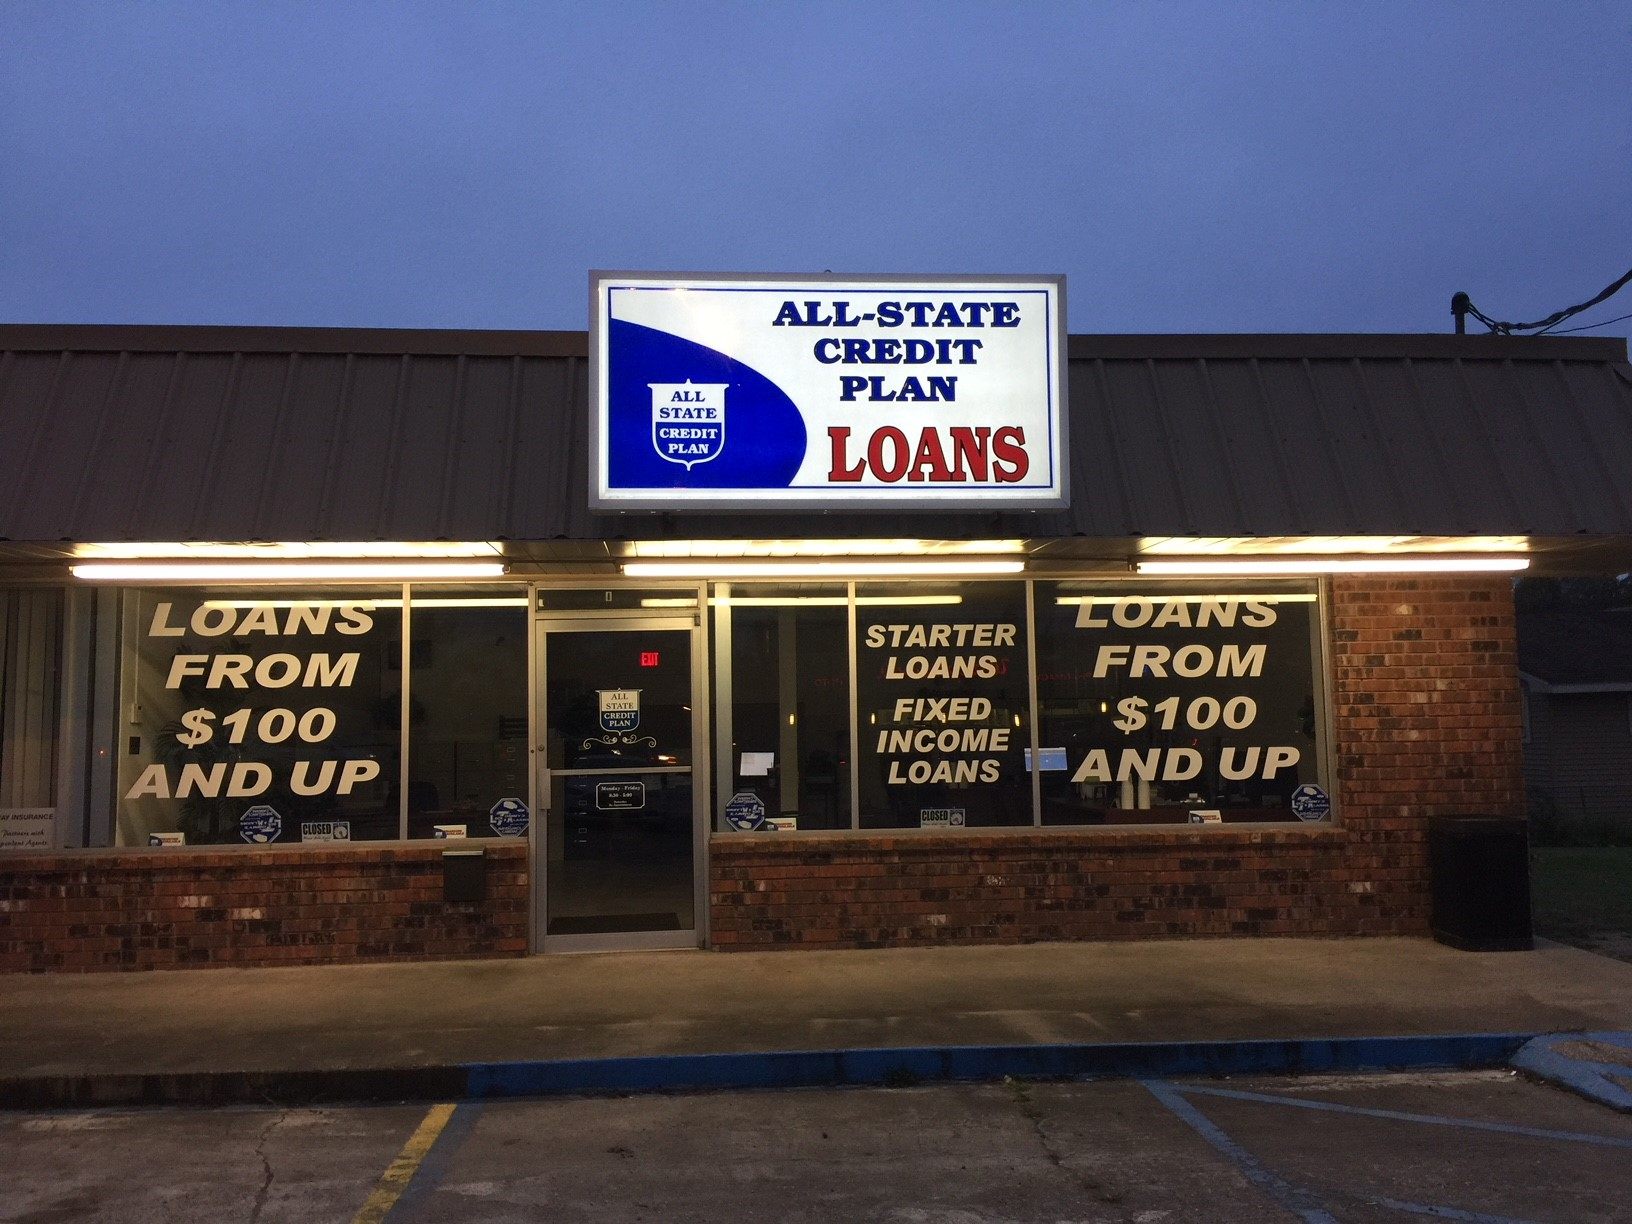 All-State Credit Plan, LLC in Bayou Vista